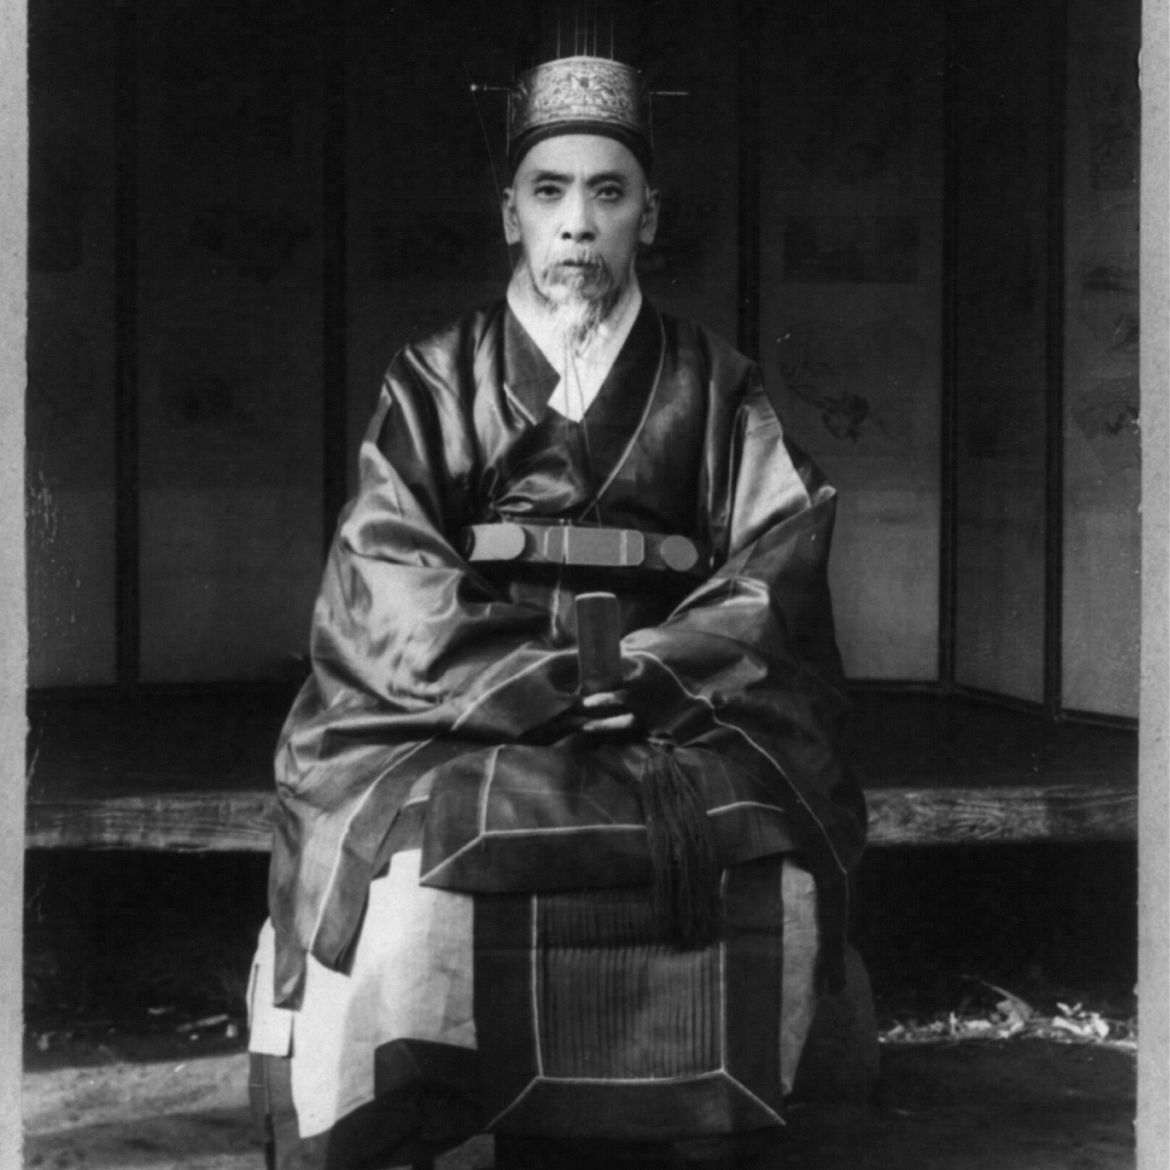 This man wears a very elaborate hanbok, with multiple layers of silk.